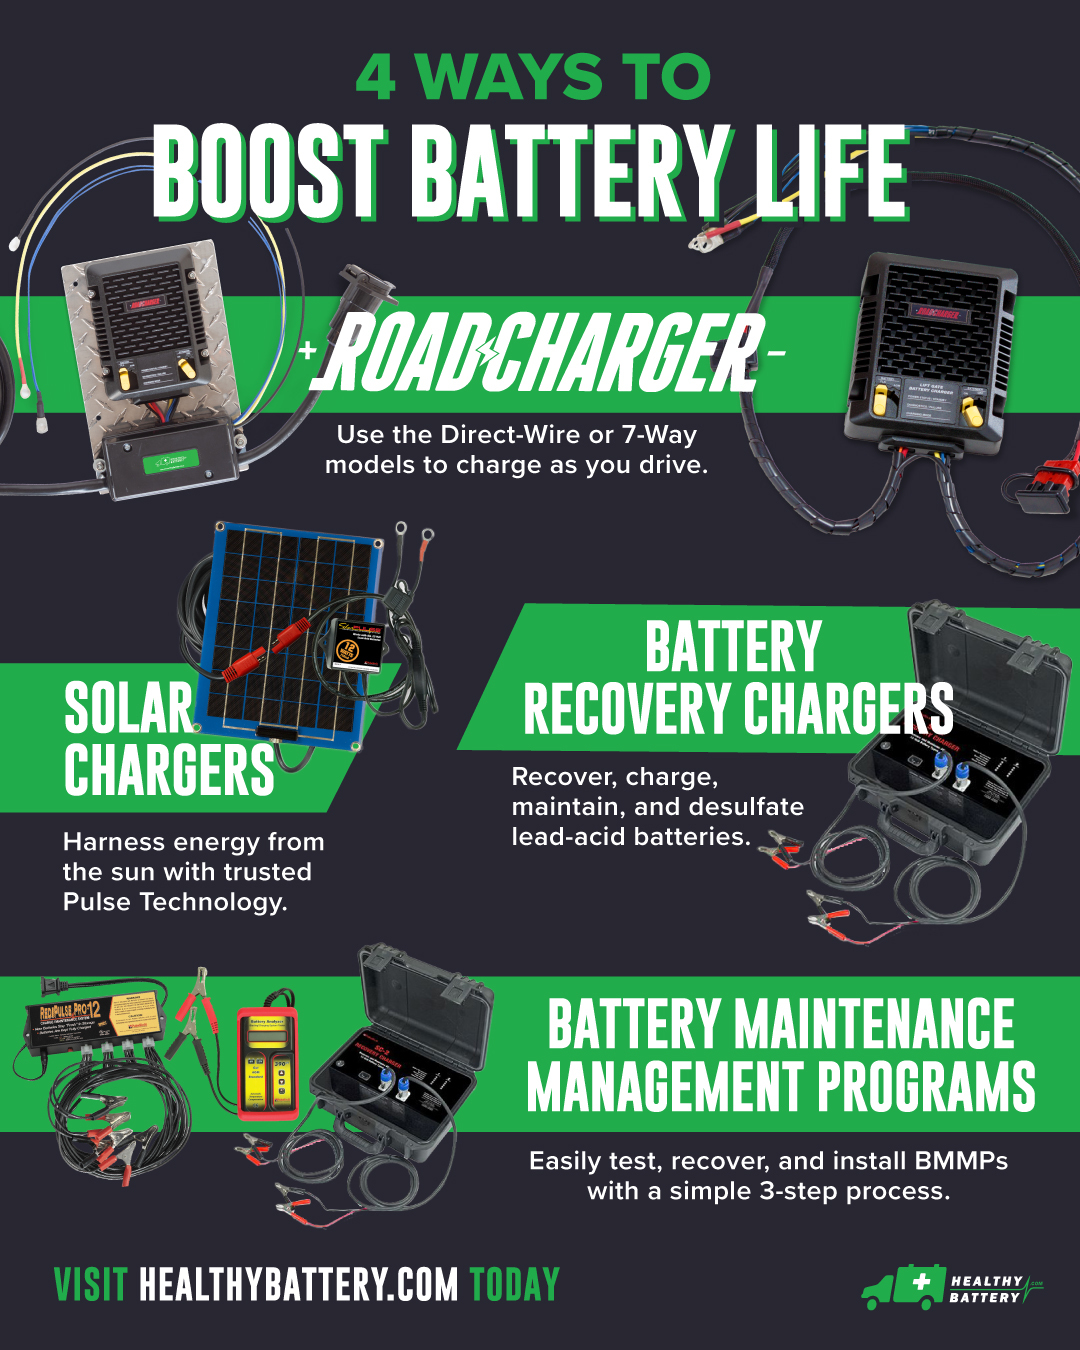 4 ways to boost battery life infographic